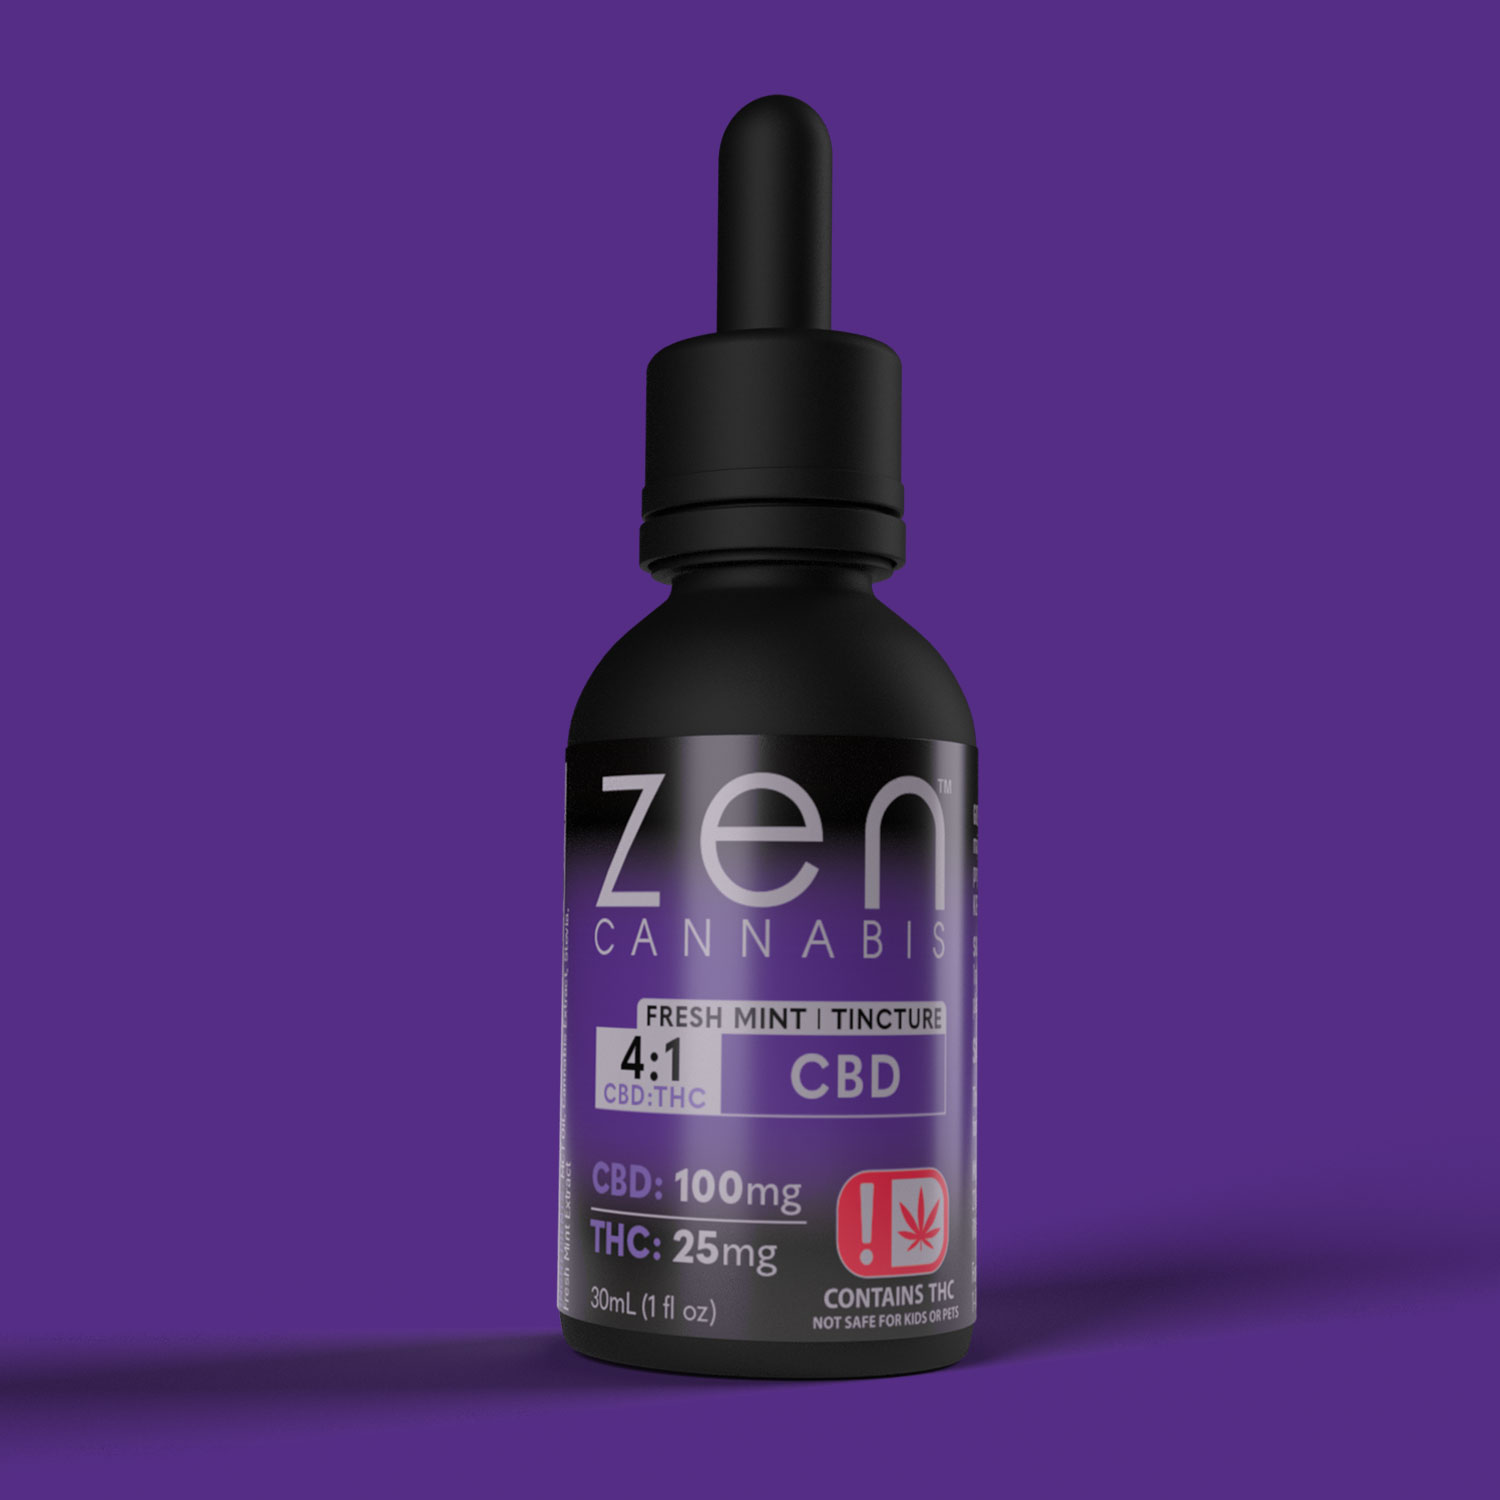 FRESH MINT 25mg THC per bottle 100mg CBD per bottle Bursting with fresh mint flavor, Zen Cannabis CBD tincture provides relief to your body and mind. This CBD-heavy tincture will keepi you alert, relaxed and in control.  25mg THC | 100mg CBD 1oz (30ml)